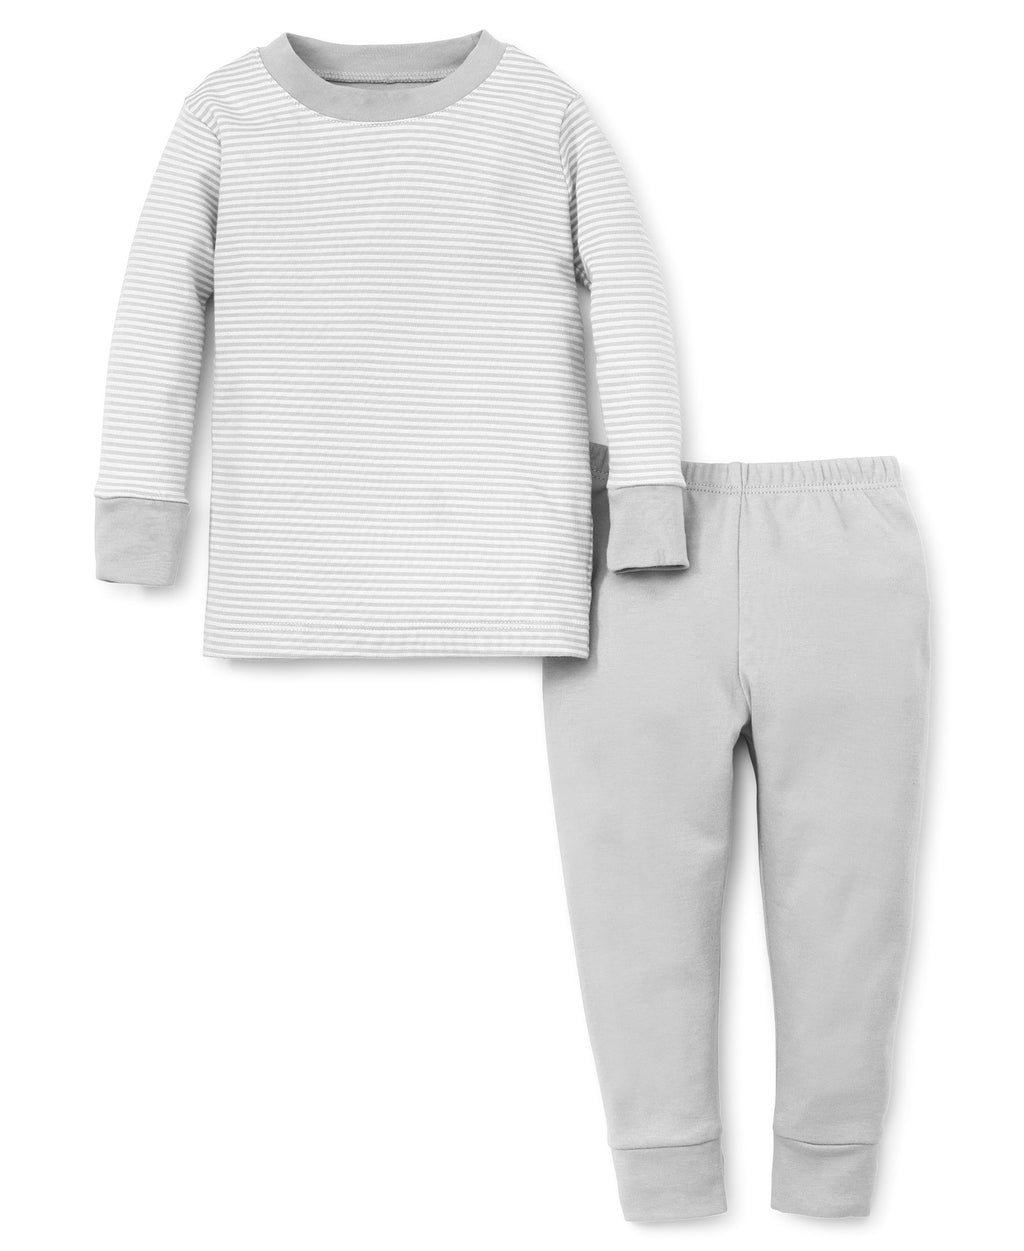 Gray Kissy Essentials Pajama Set